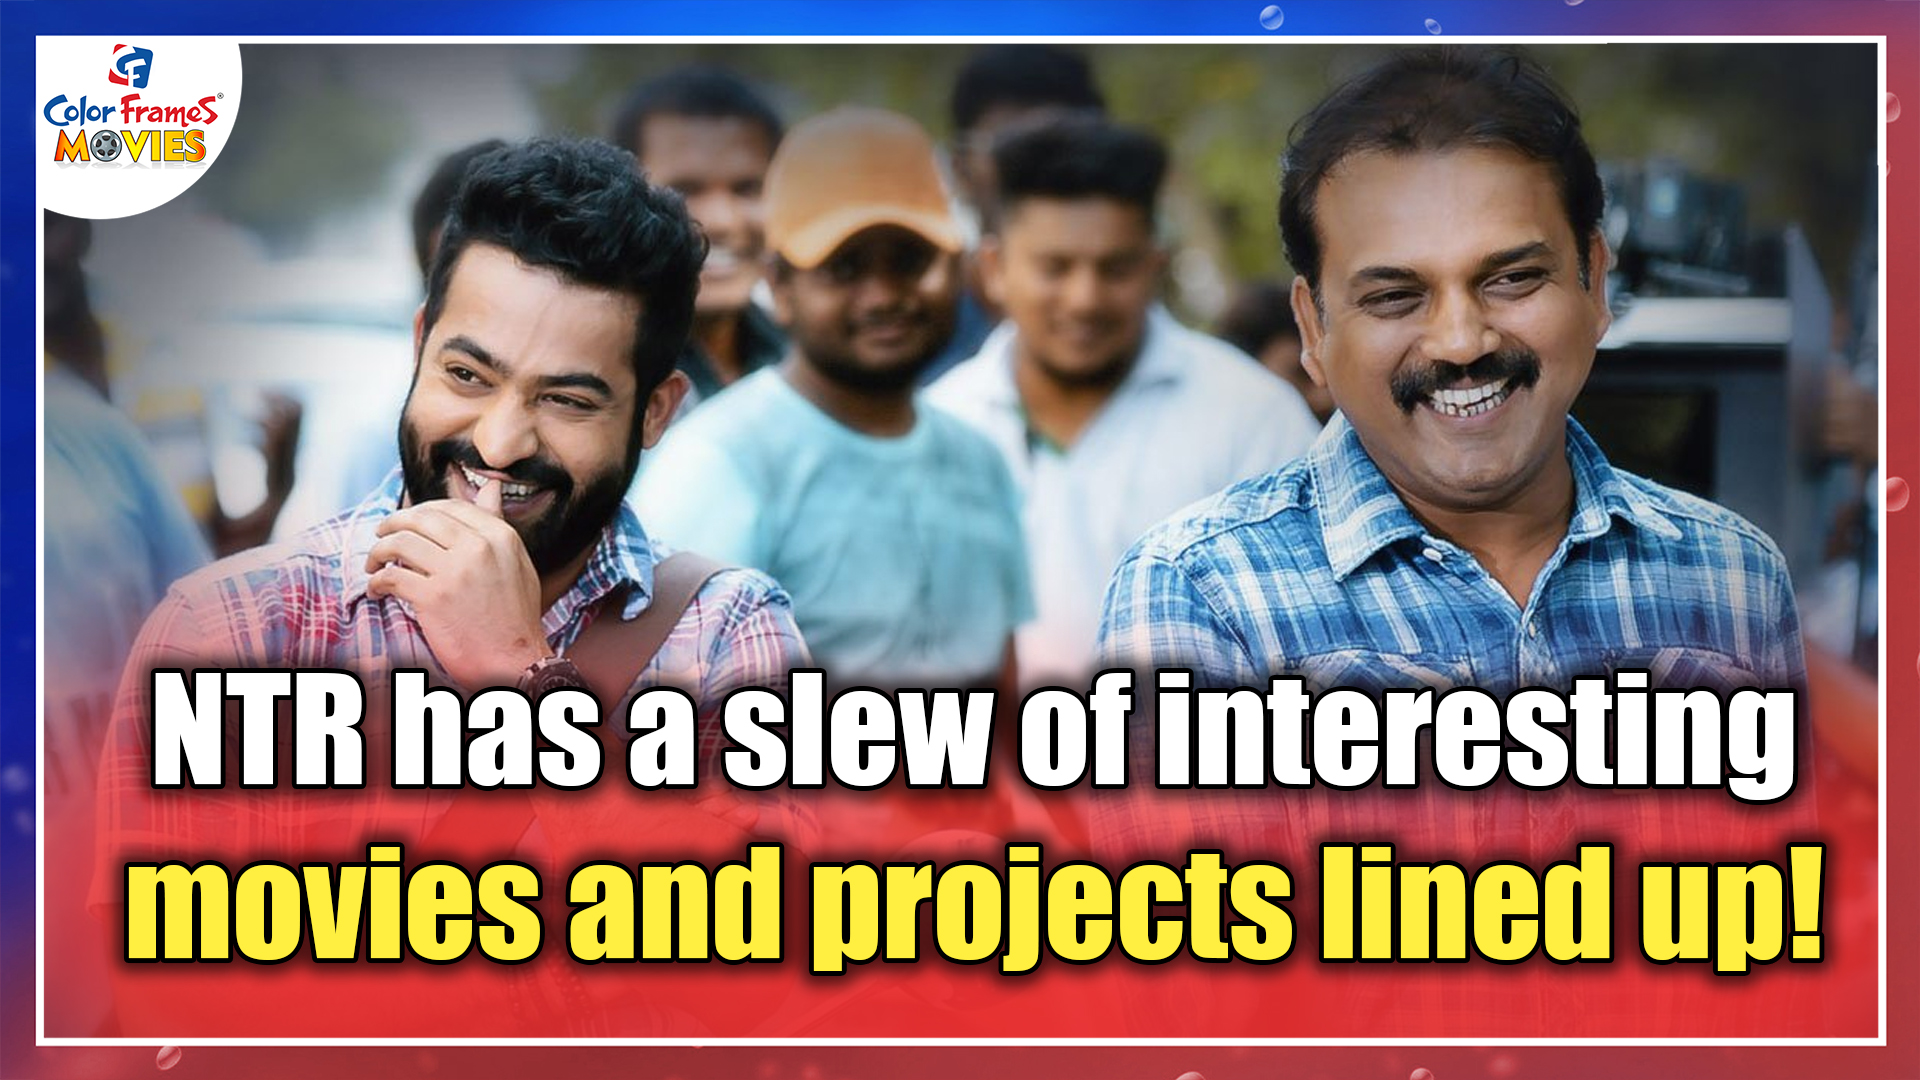 NTR has a slew of interesting movies and projects lined up!